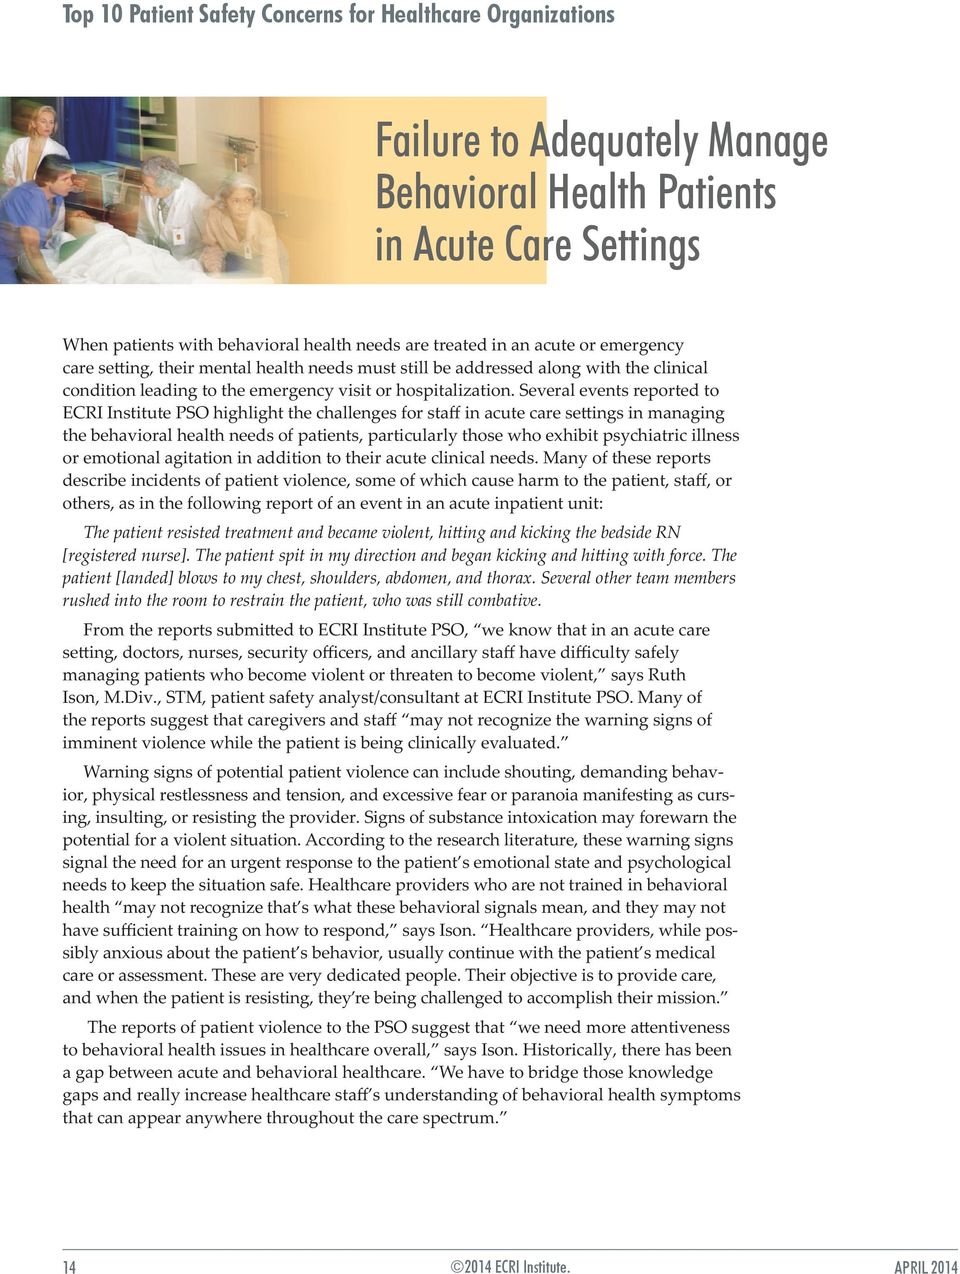 Several events reported to ECRI Institute PSO highlight the challenges for staff in acute care settings in managing the behavioral health needs of patients, particularly those who exhibit psychiatric